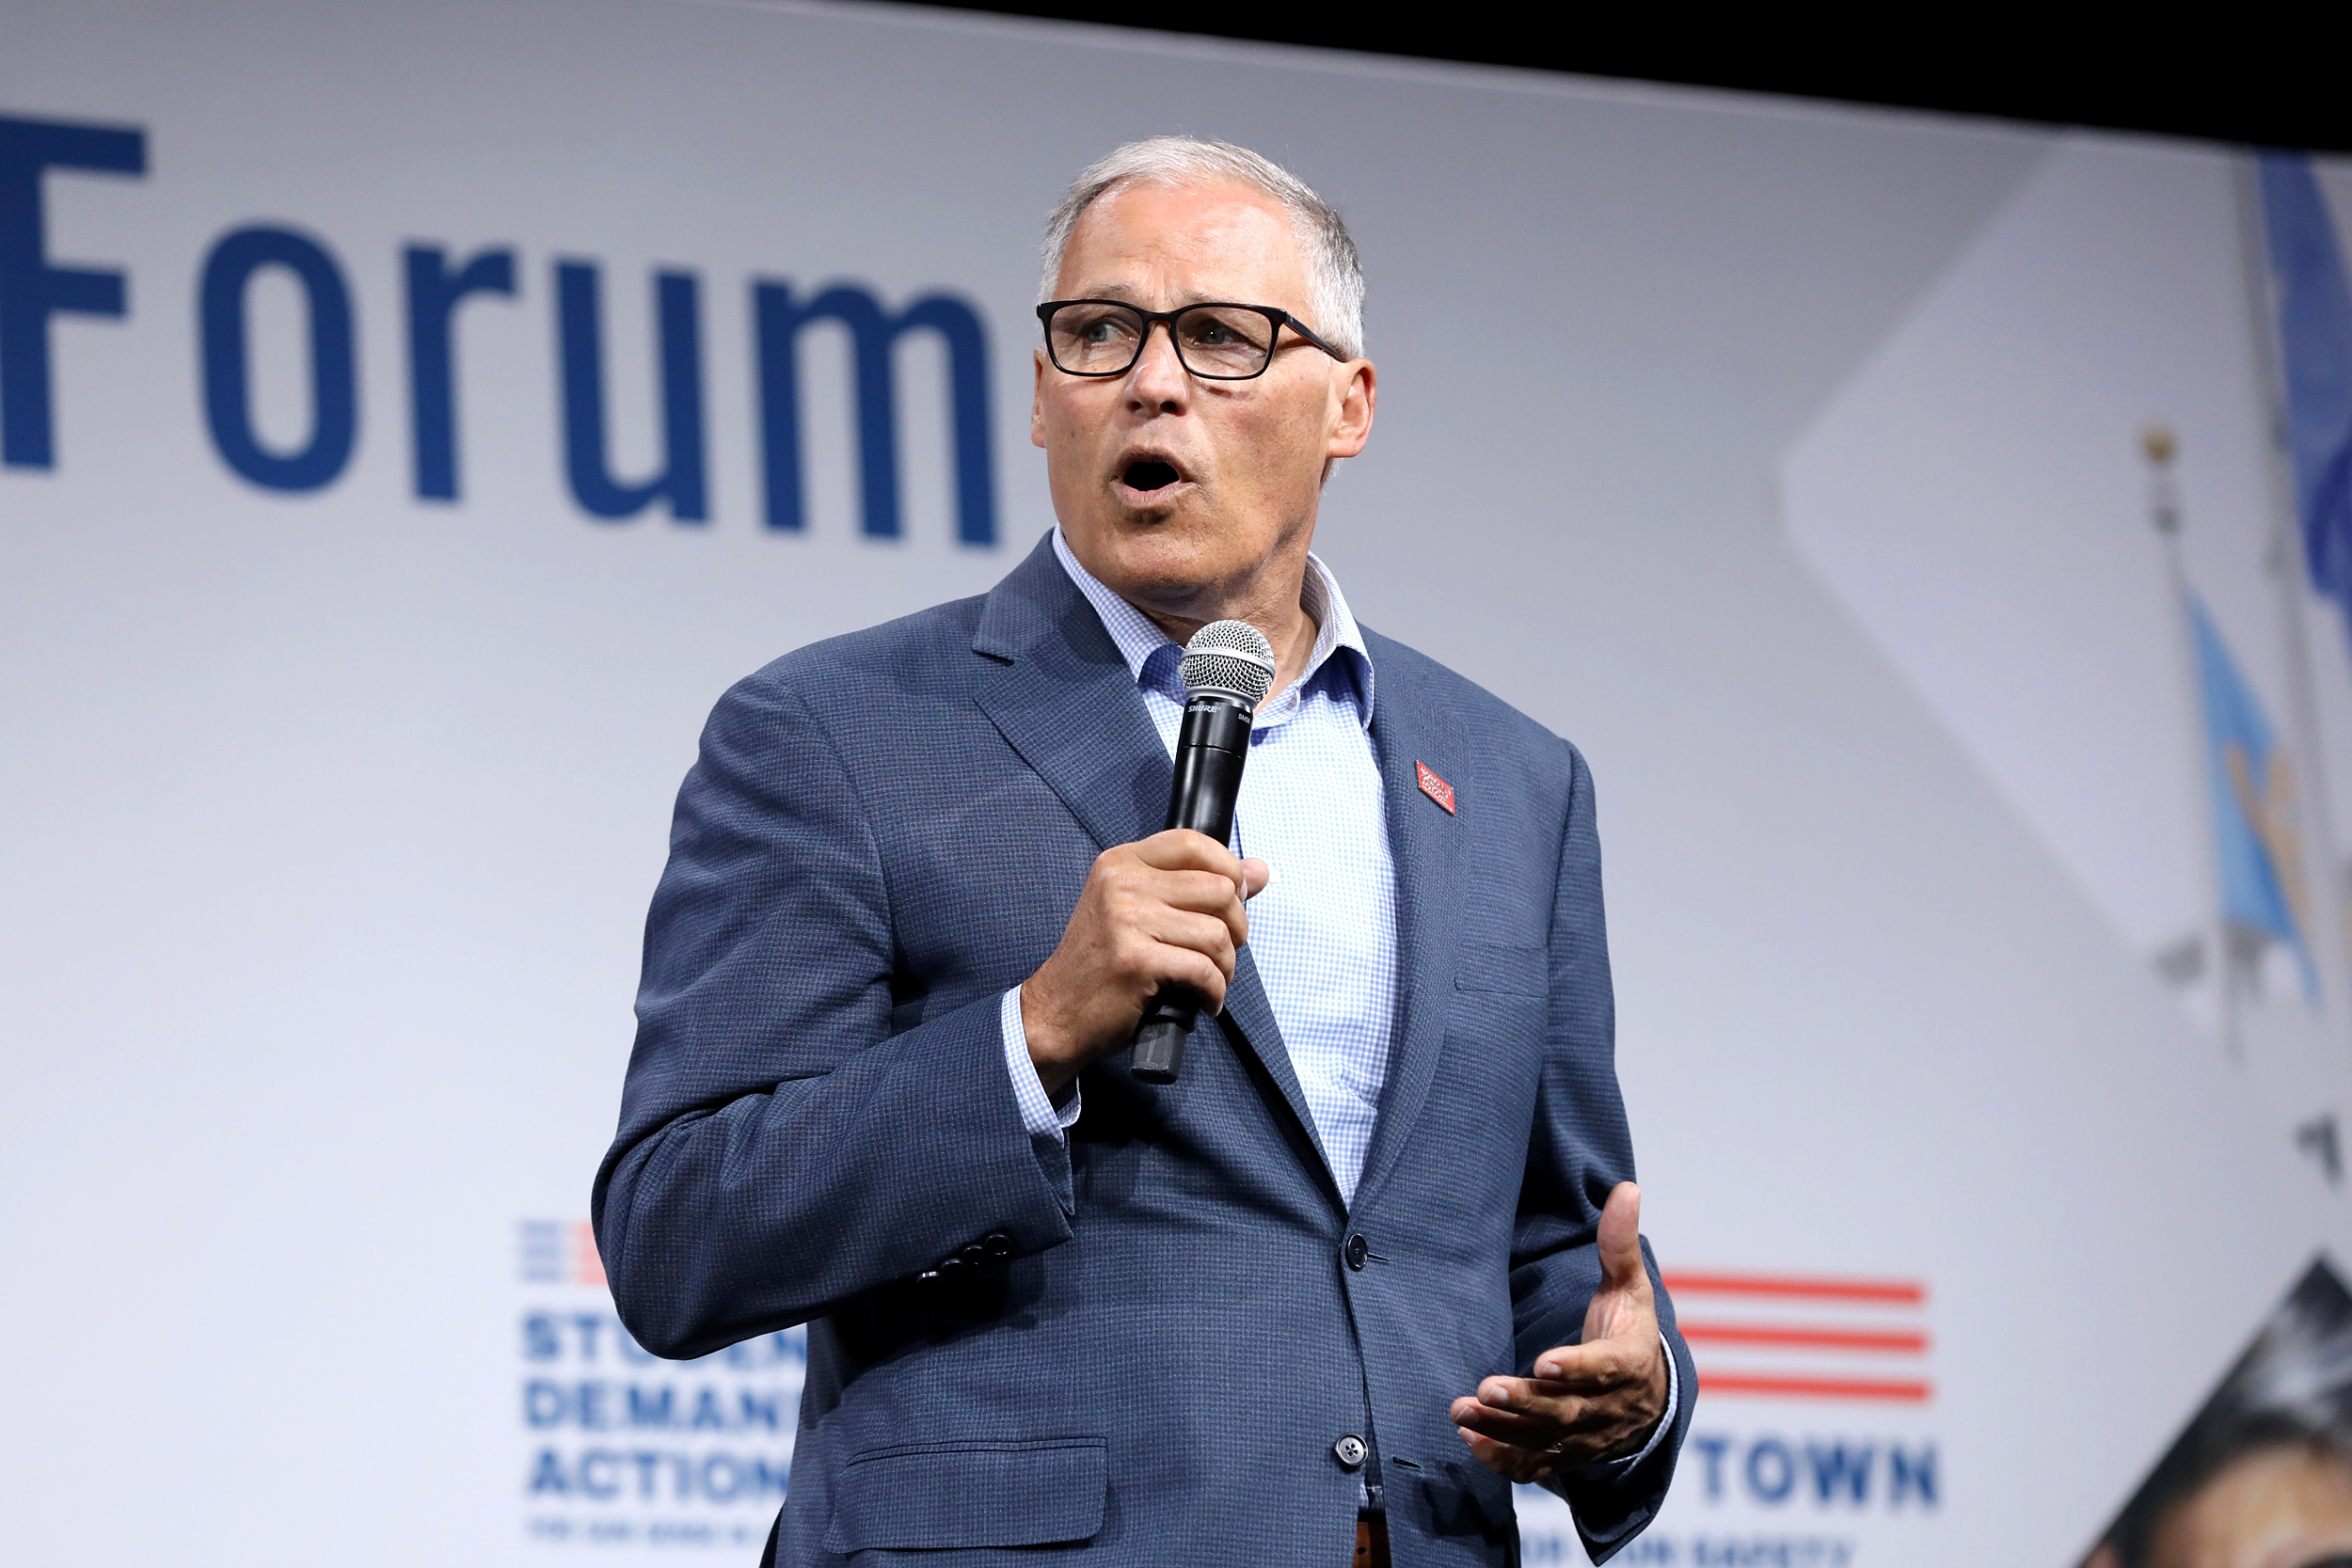 Jay Inslee drops out of the 2020 presidential race